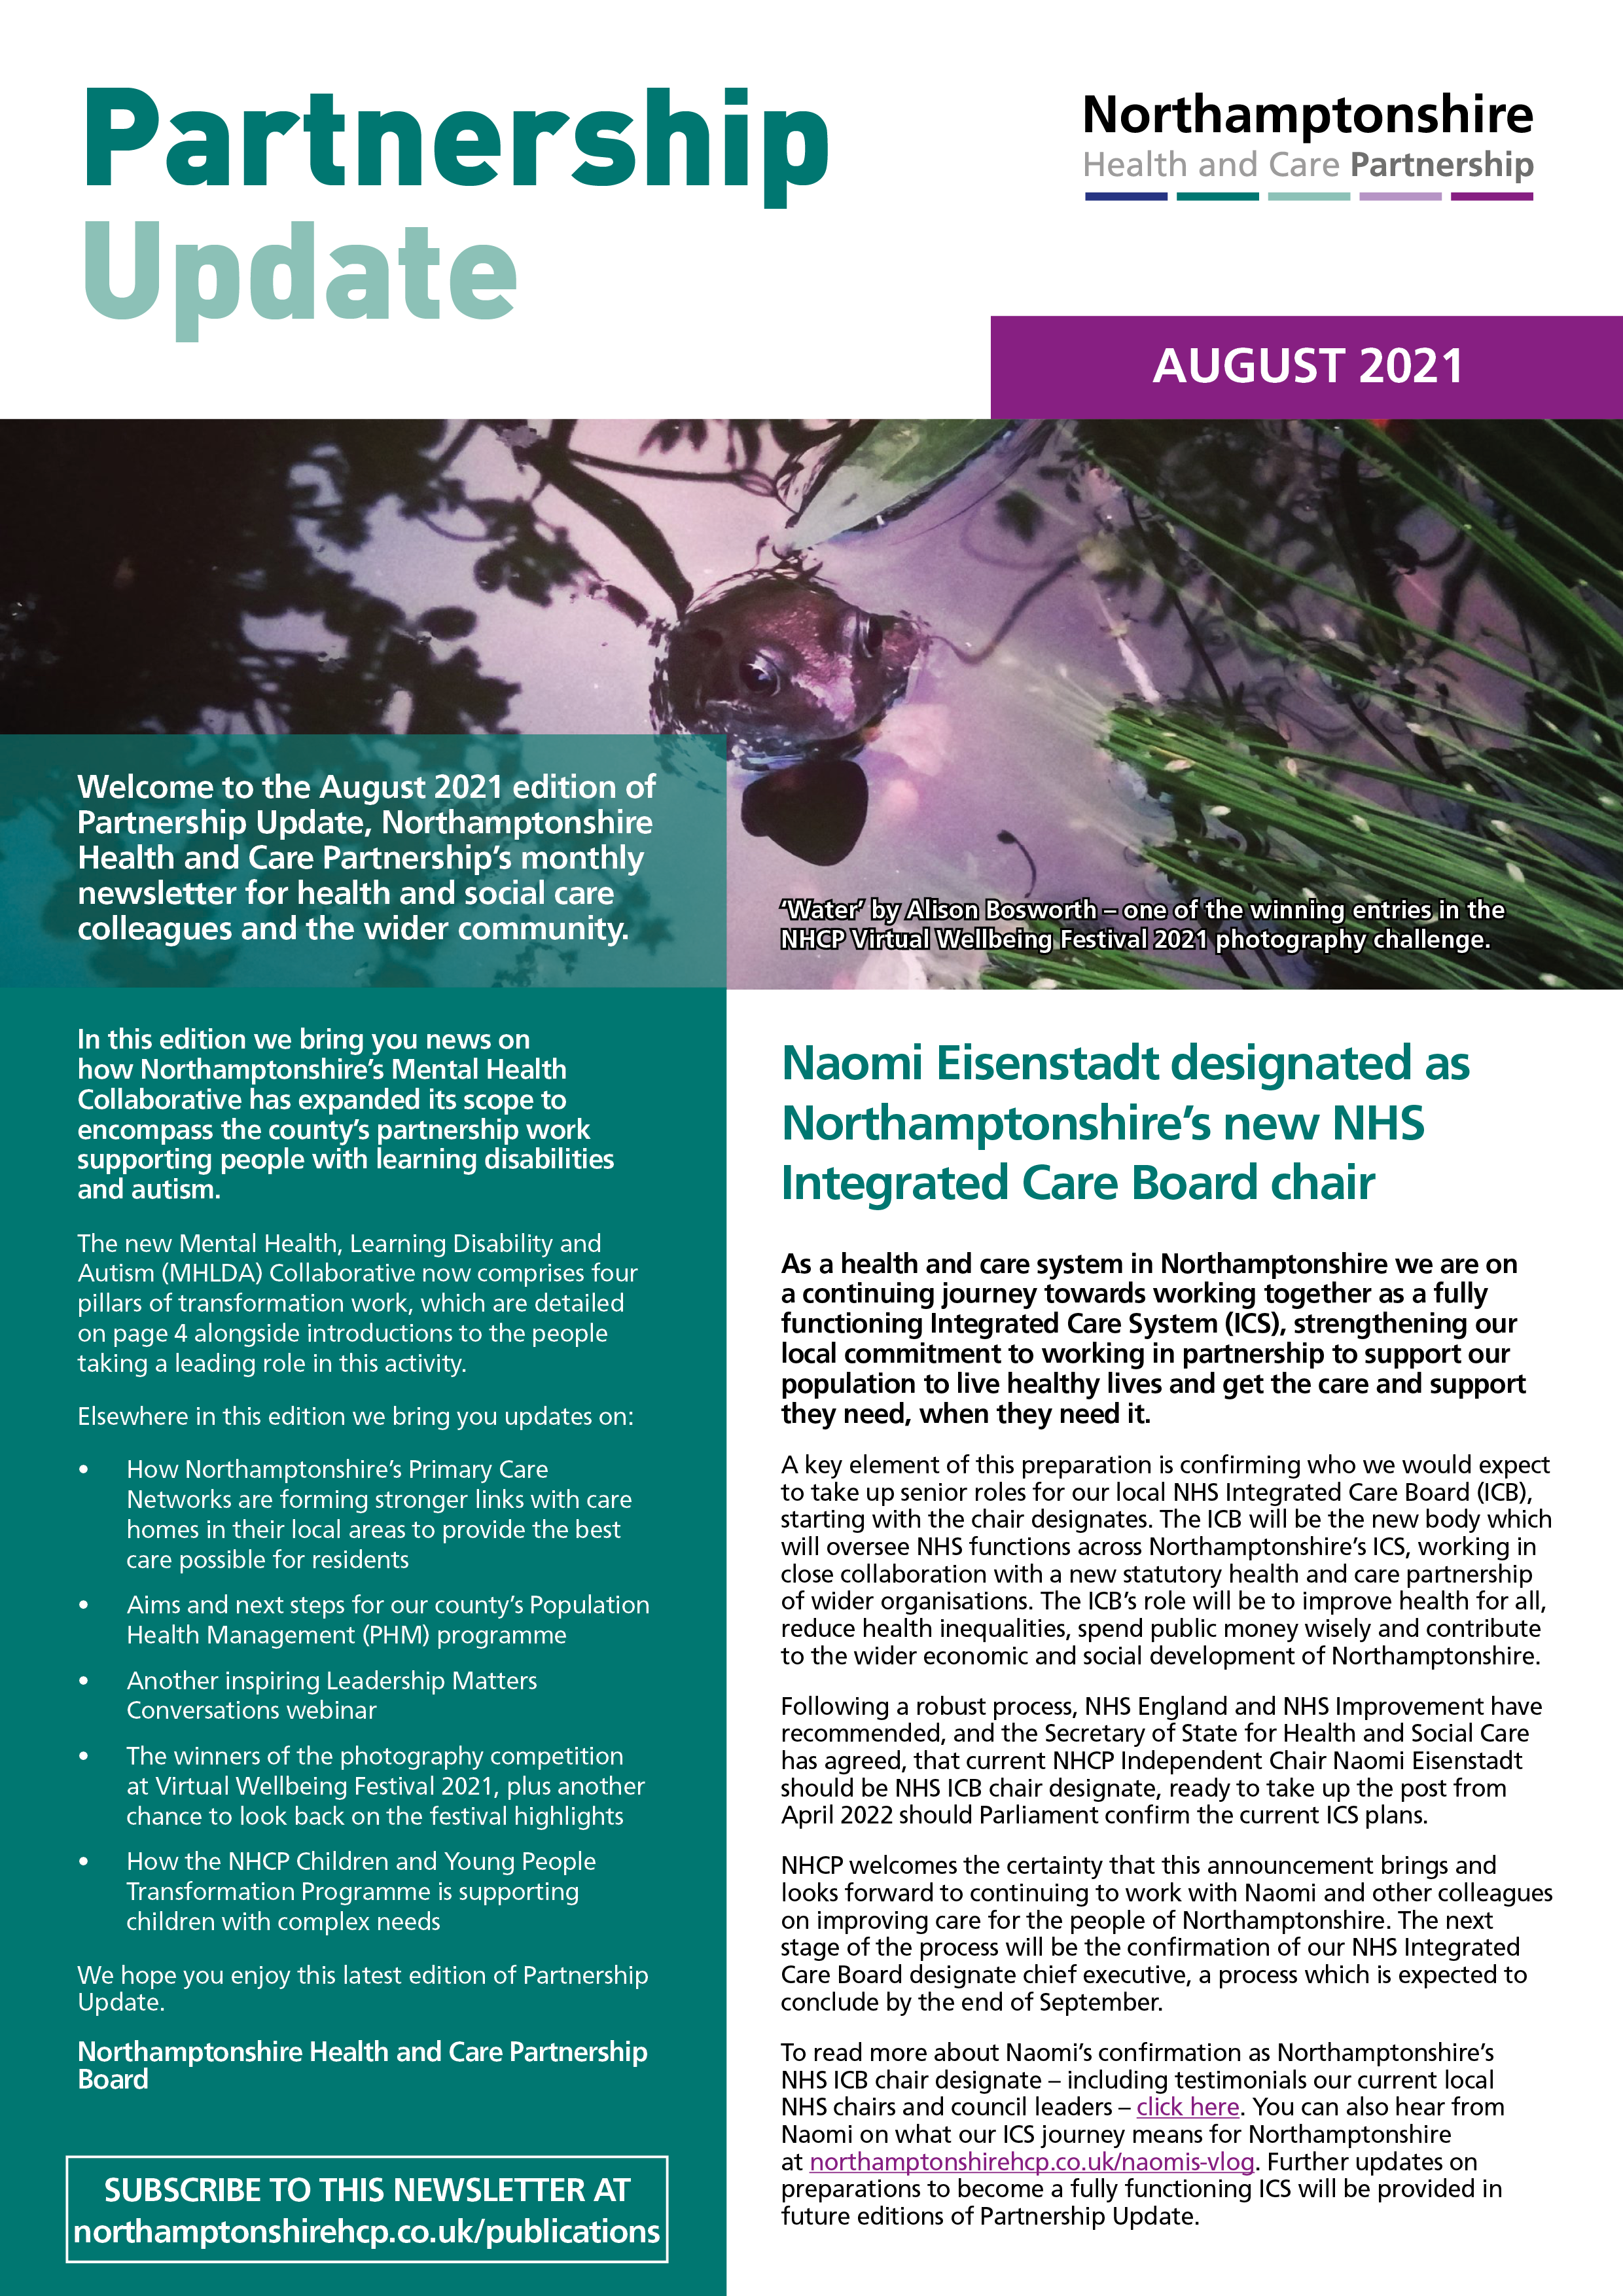 NHCP Partnership Update August 2021 front page